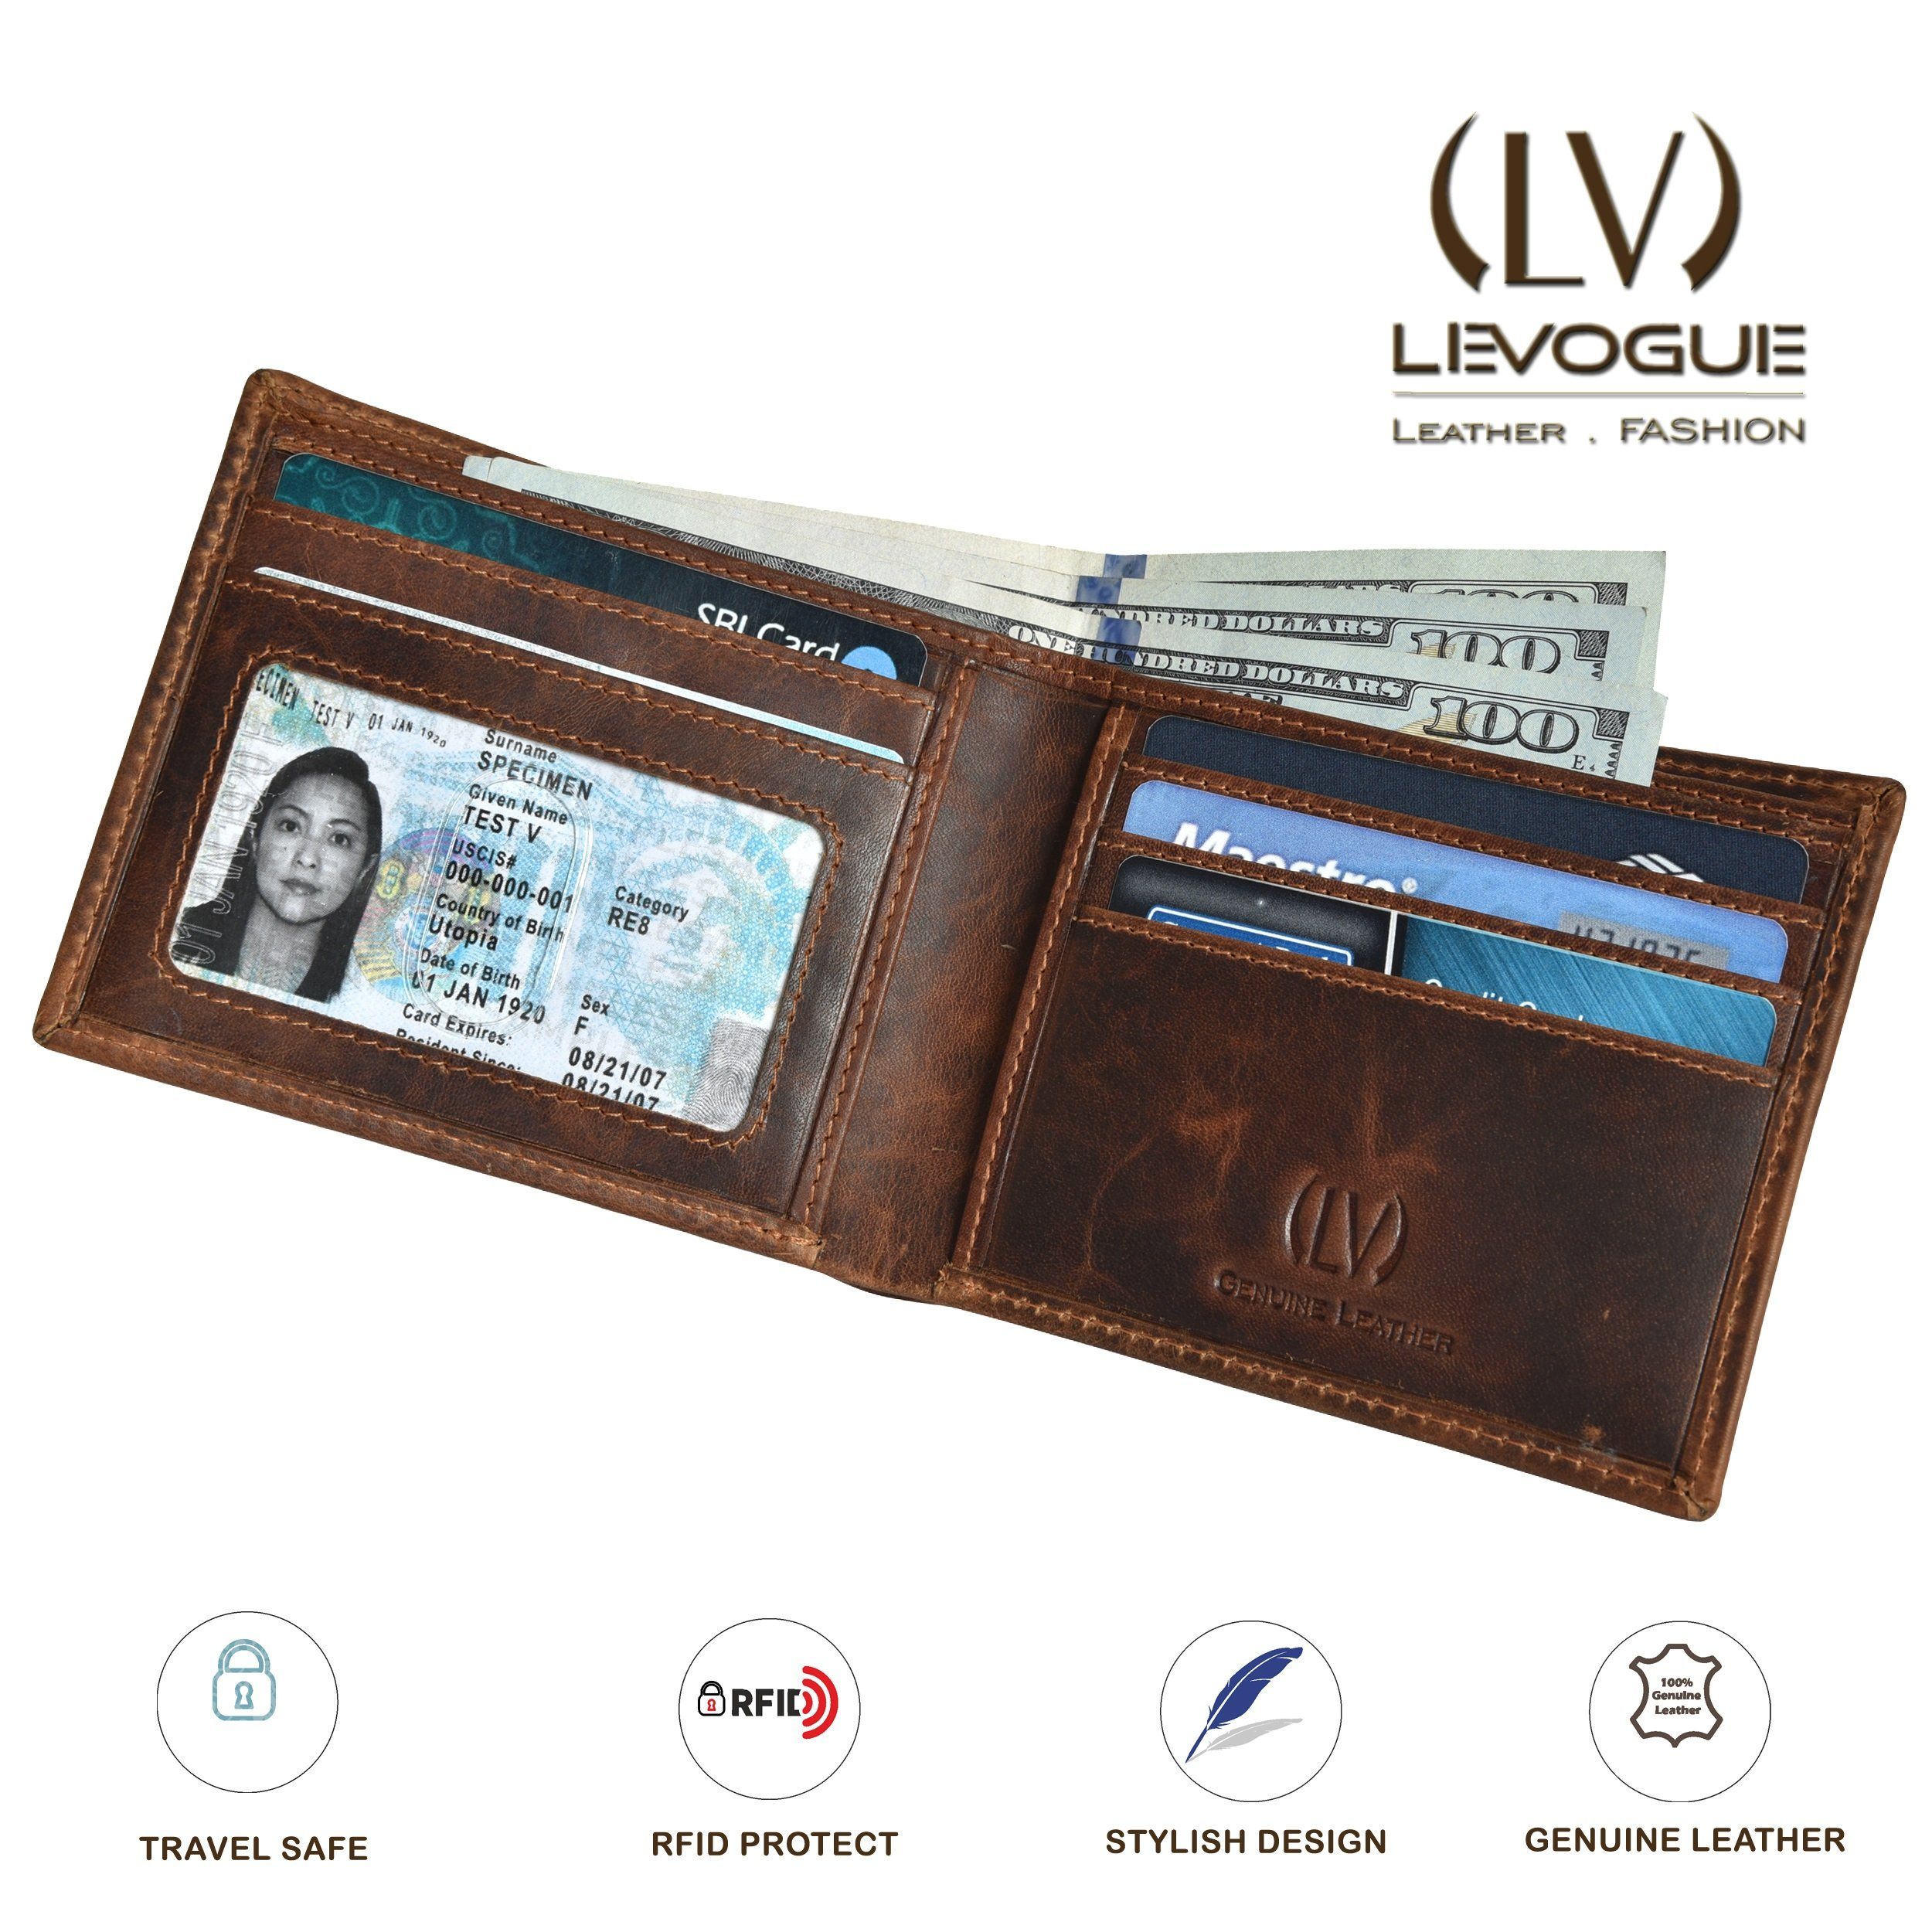 Genuine COW VINTAGE Leather RFID Blocking Handmade Bifold Wallet for Men 4 Credit card+1 ID Window+2 Note Compartment Minimalist Front Pocket Wallet- 100% Full Grain Cow Leather by LEVOGUE by LEVOGUE (Image #5)